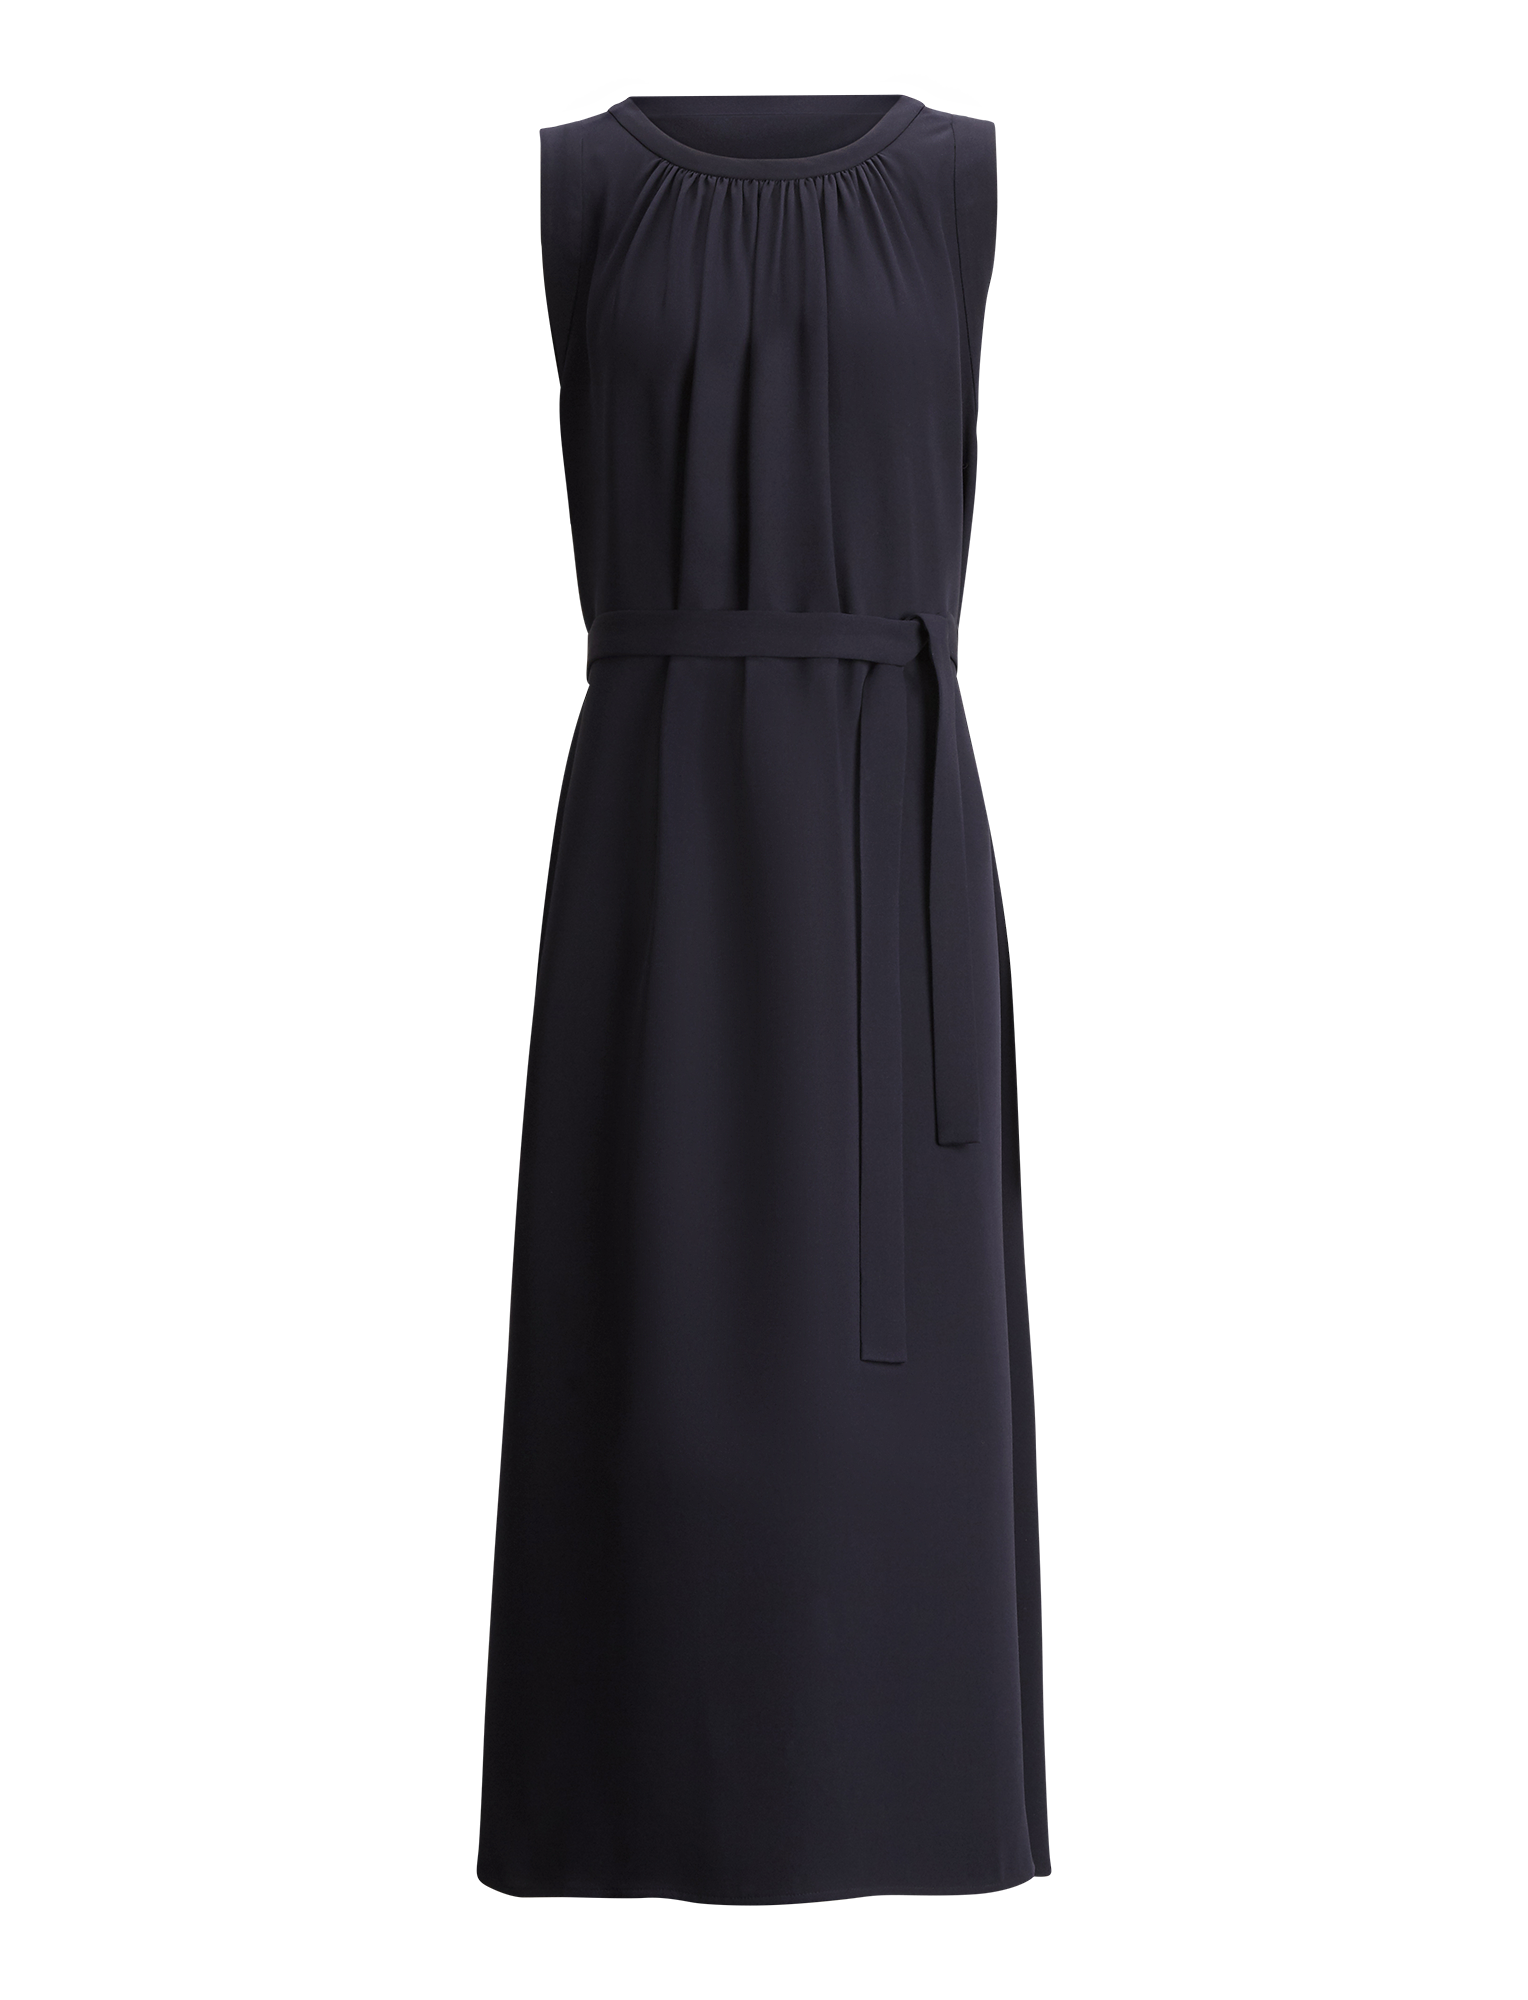 Joseph, Grace Silk Crepe Dress, in NAVY